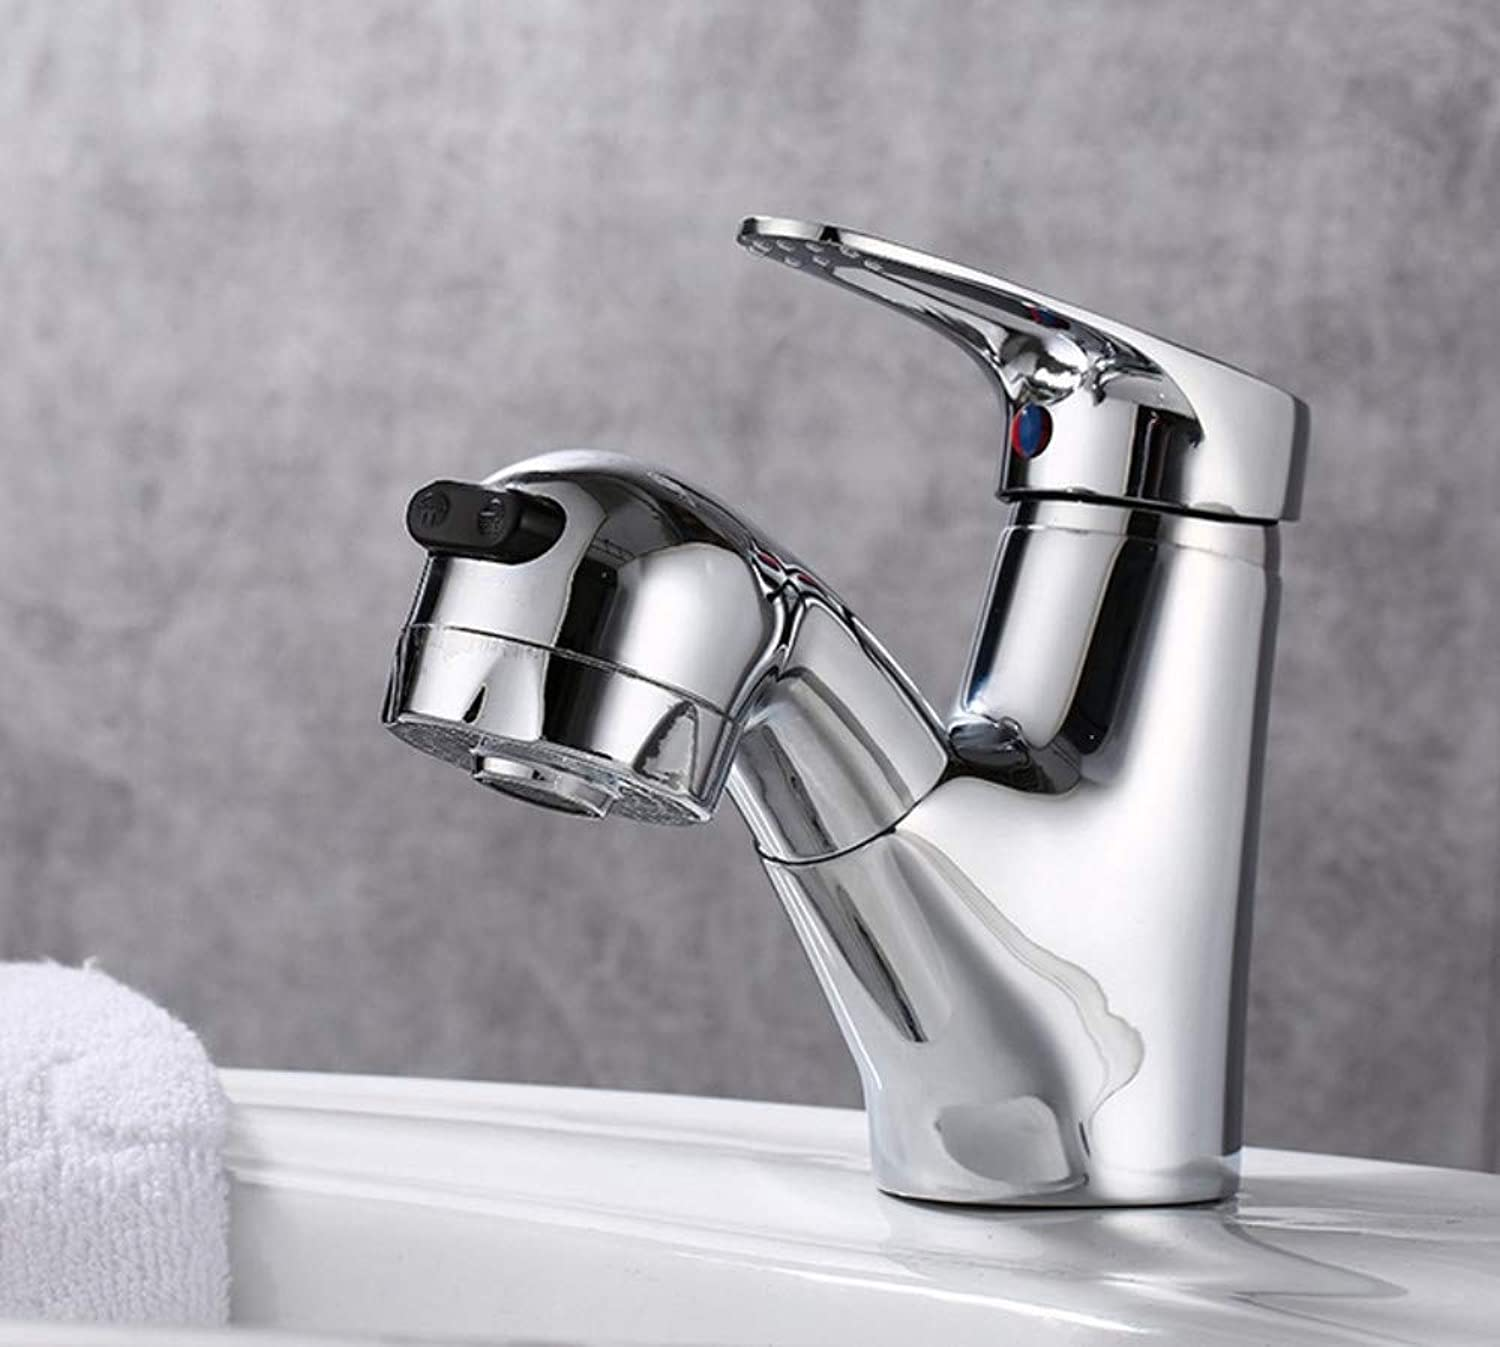 redOOY Pullable telescopic faucet sink hot and cold basin full copper lifting shampoo single hole bathroom faucet